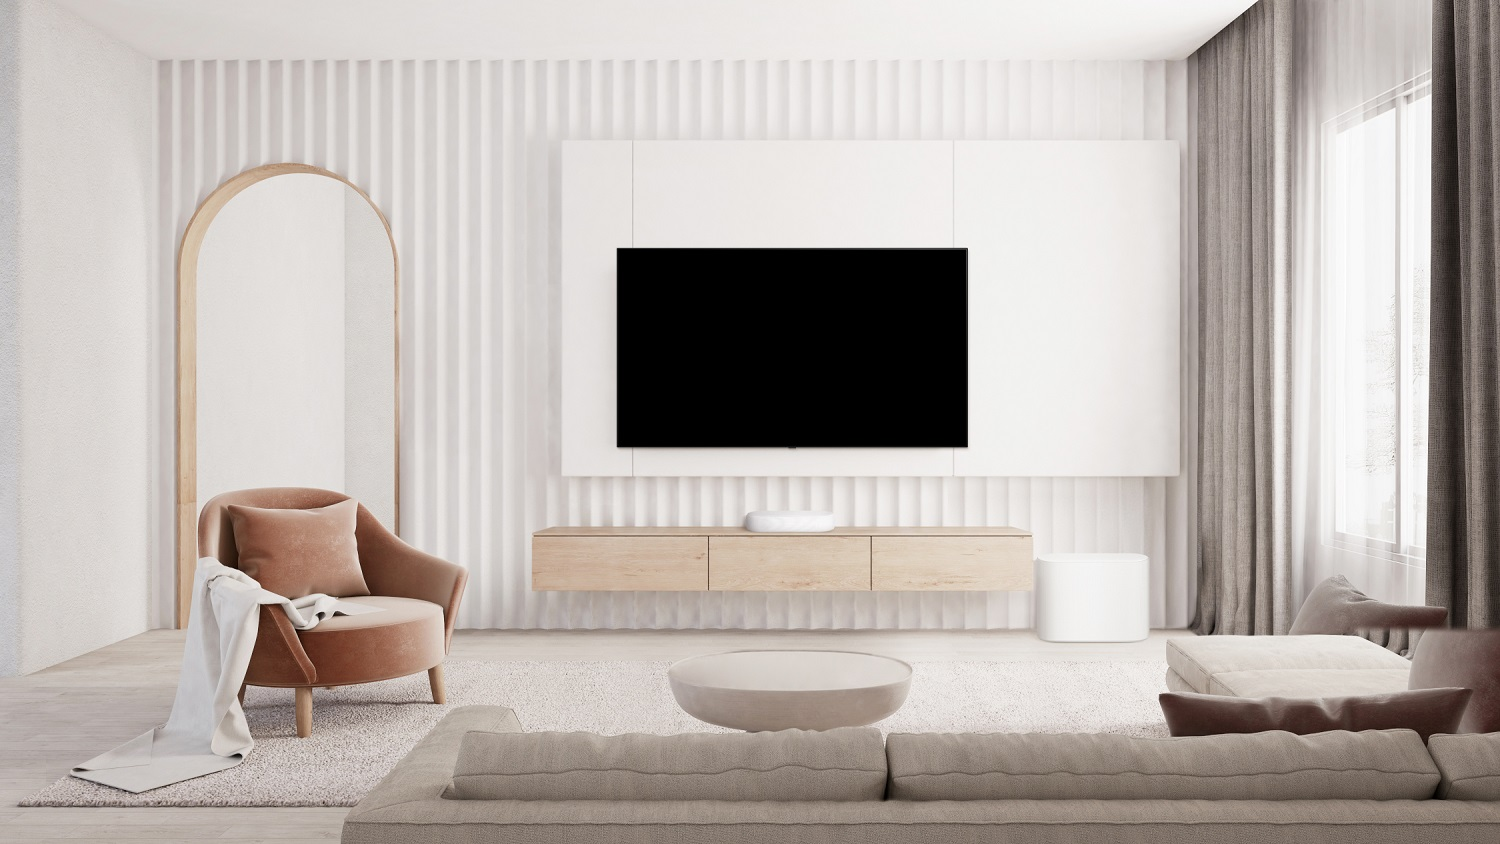 LG Eclair Compact Soundbar Delivers Room-Filling Sound to Movie and Music Lovers Worldwide